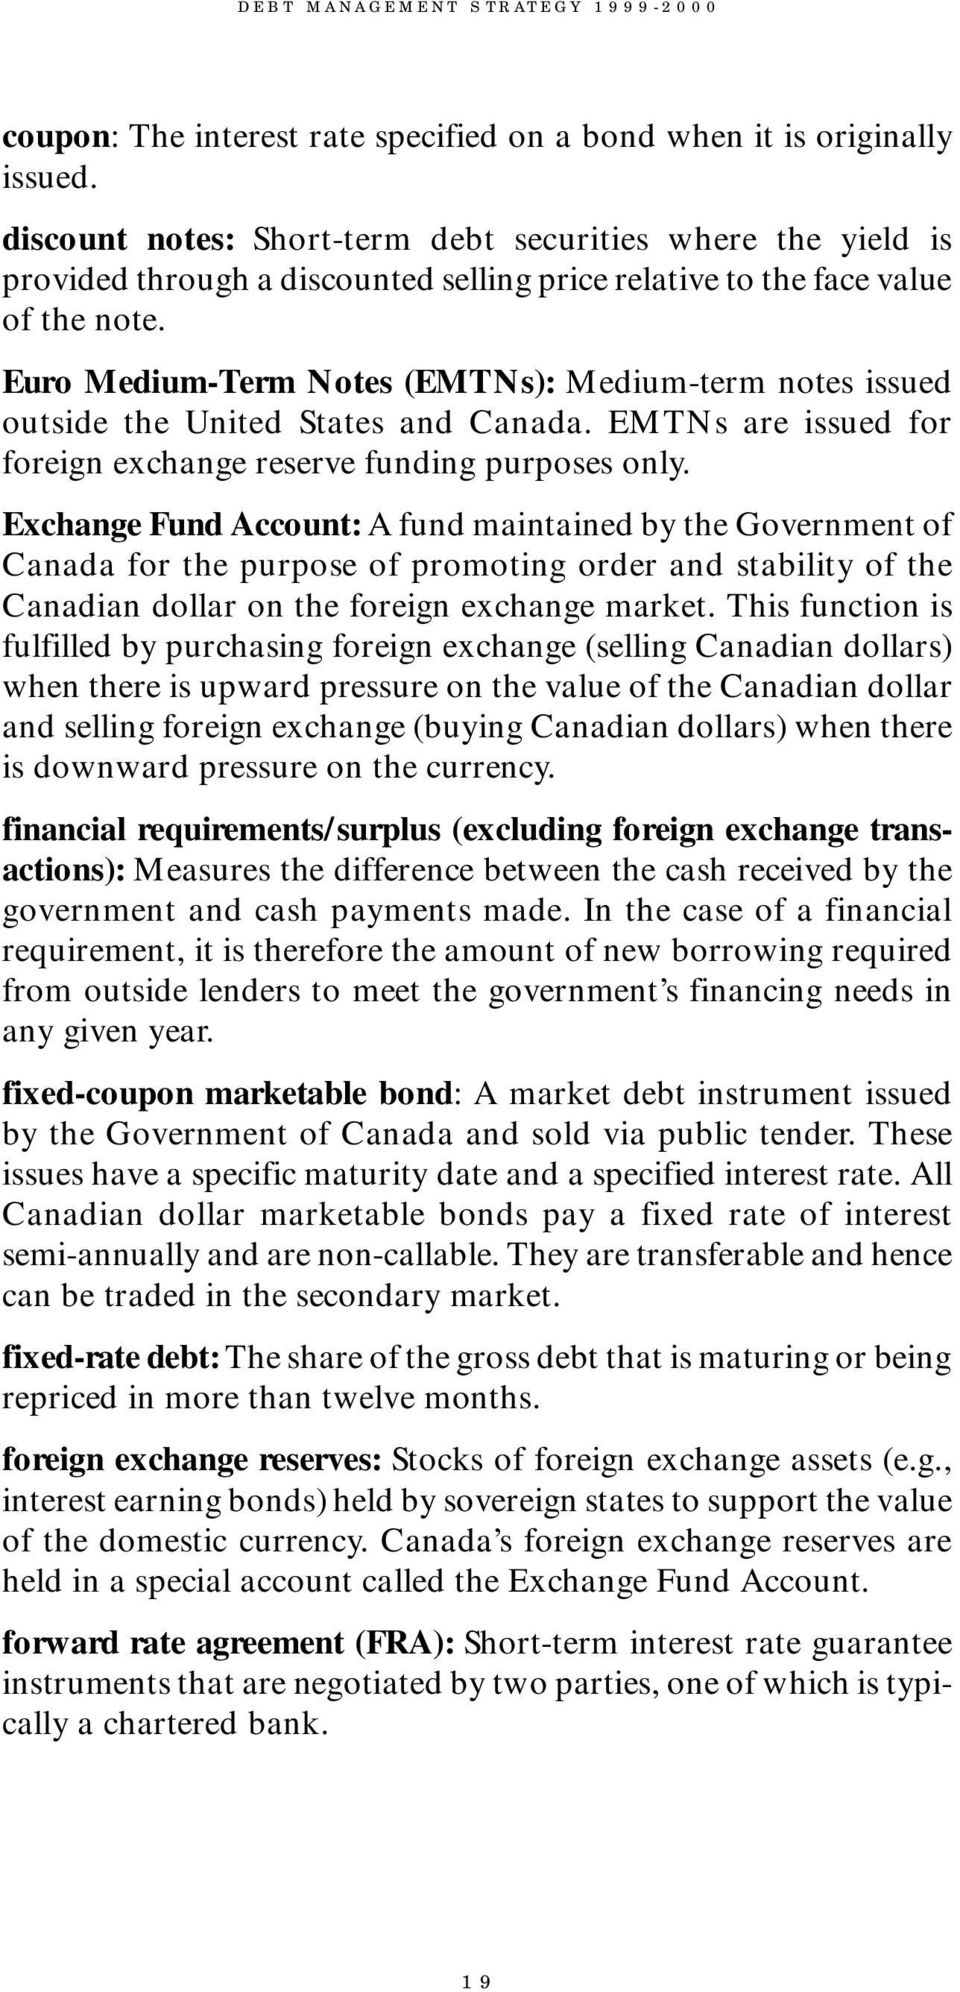 Euro Medium-Term Notes (EMTNs): Medium-term notes issued outside the United States and Canada. EMTNs are issued for foreign exchange reserve funding purposes only.